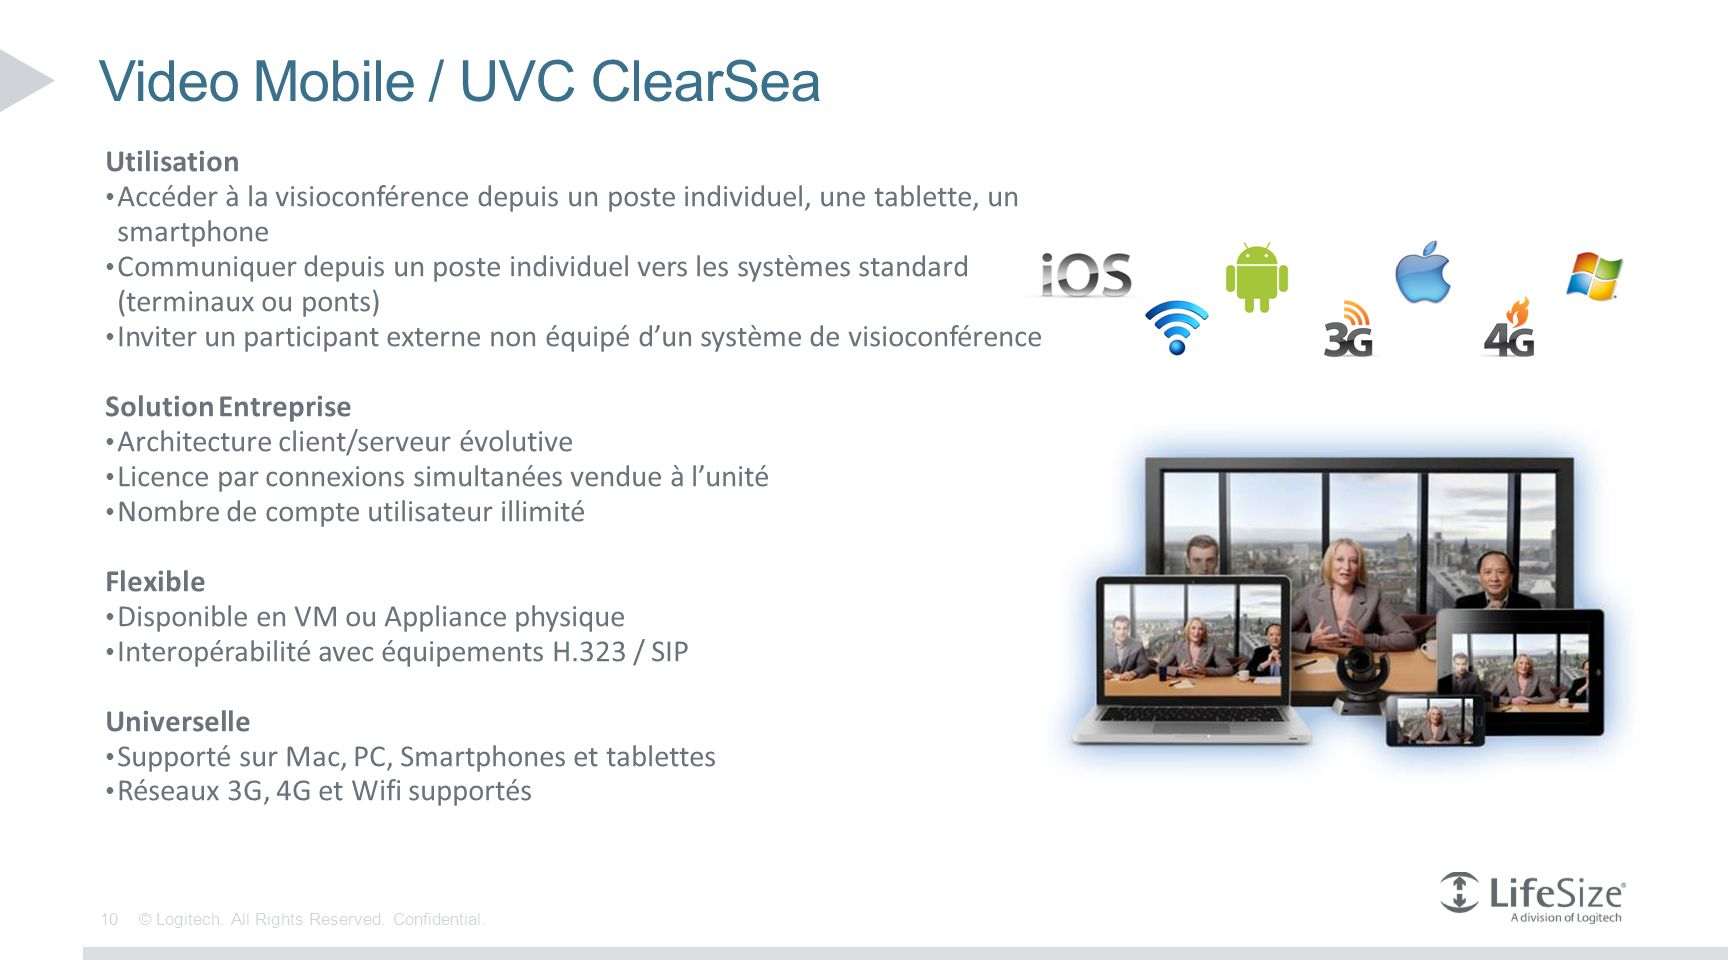 Video Mobile / UVC ClearSea